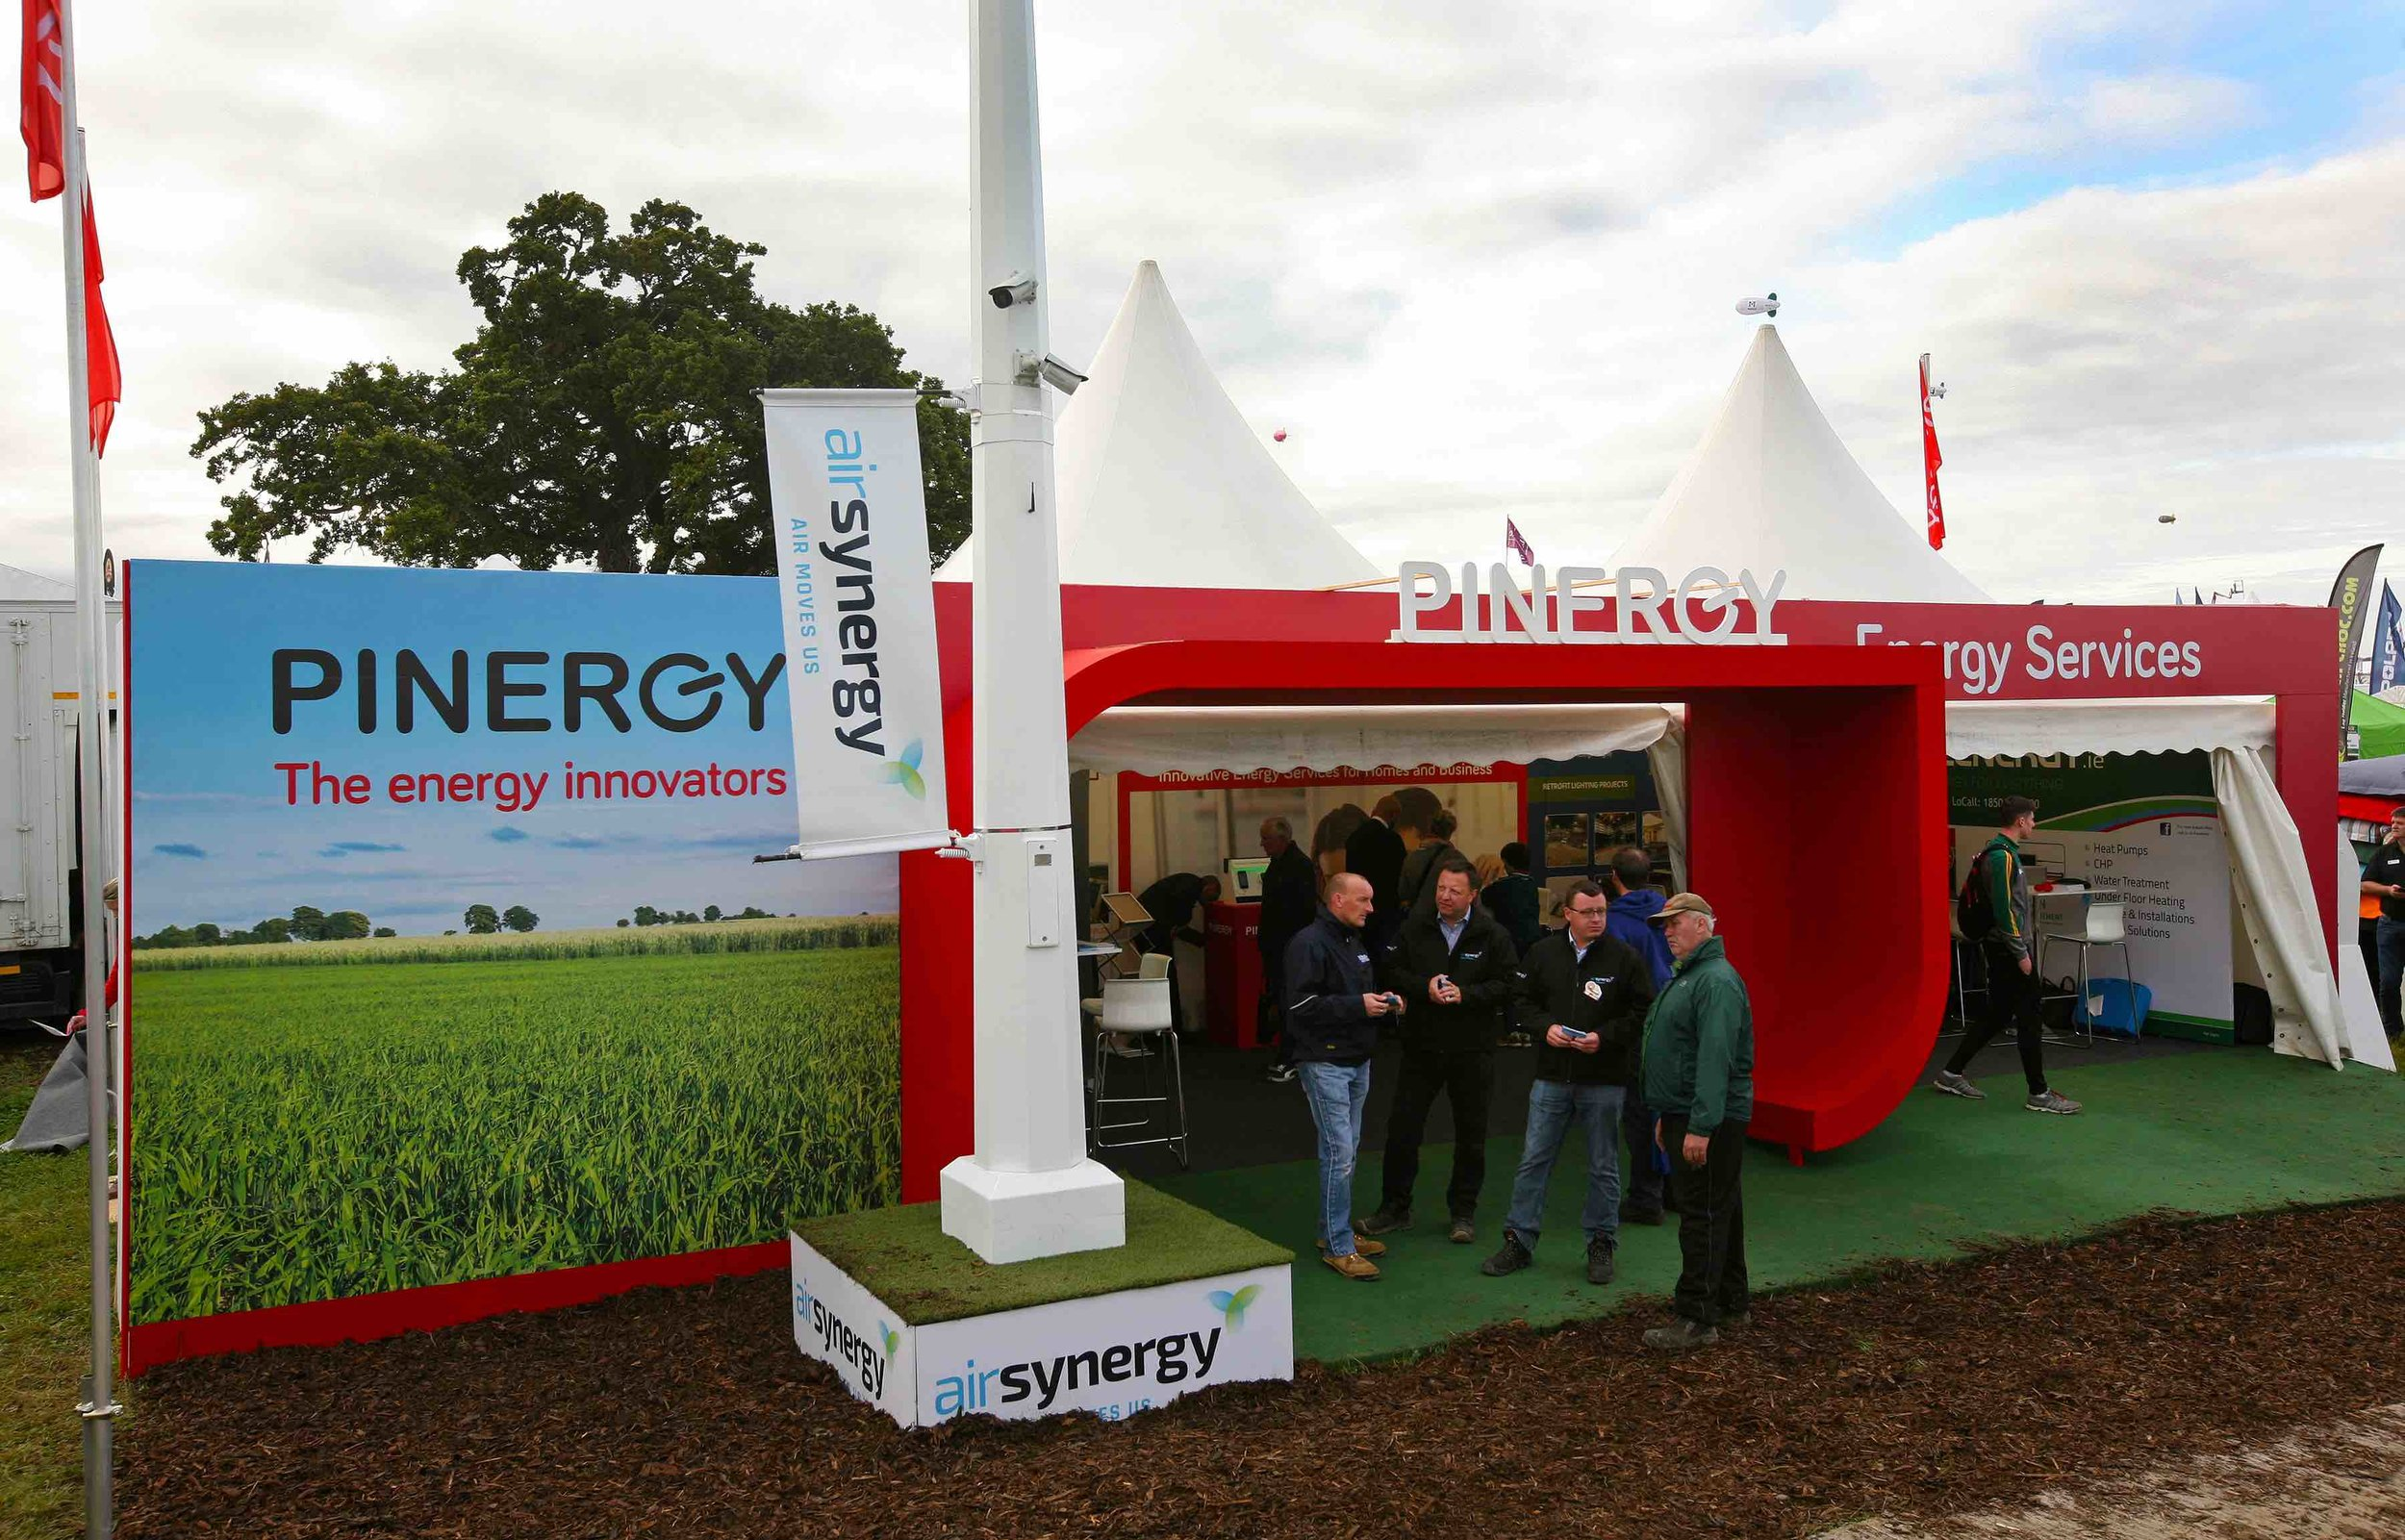 Pinergy Exhibition Stand at The National Ploughing Championships 2017